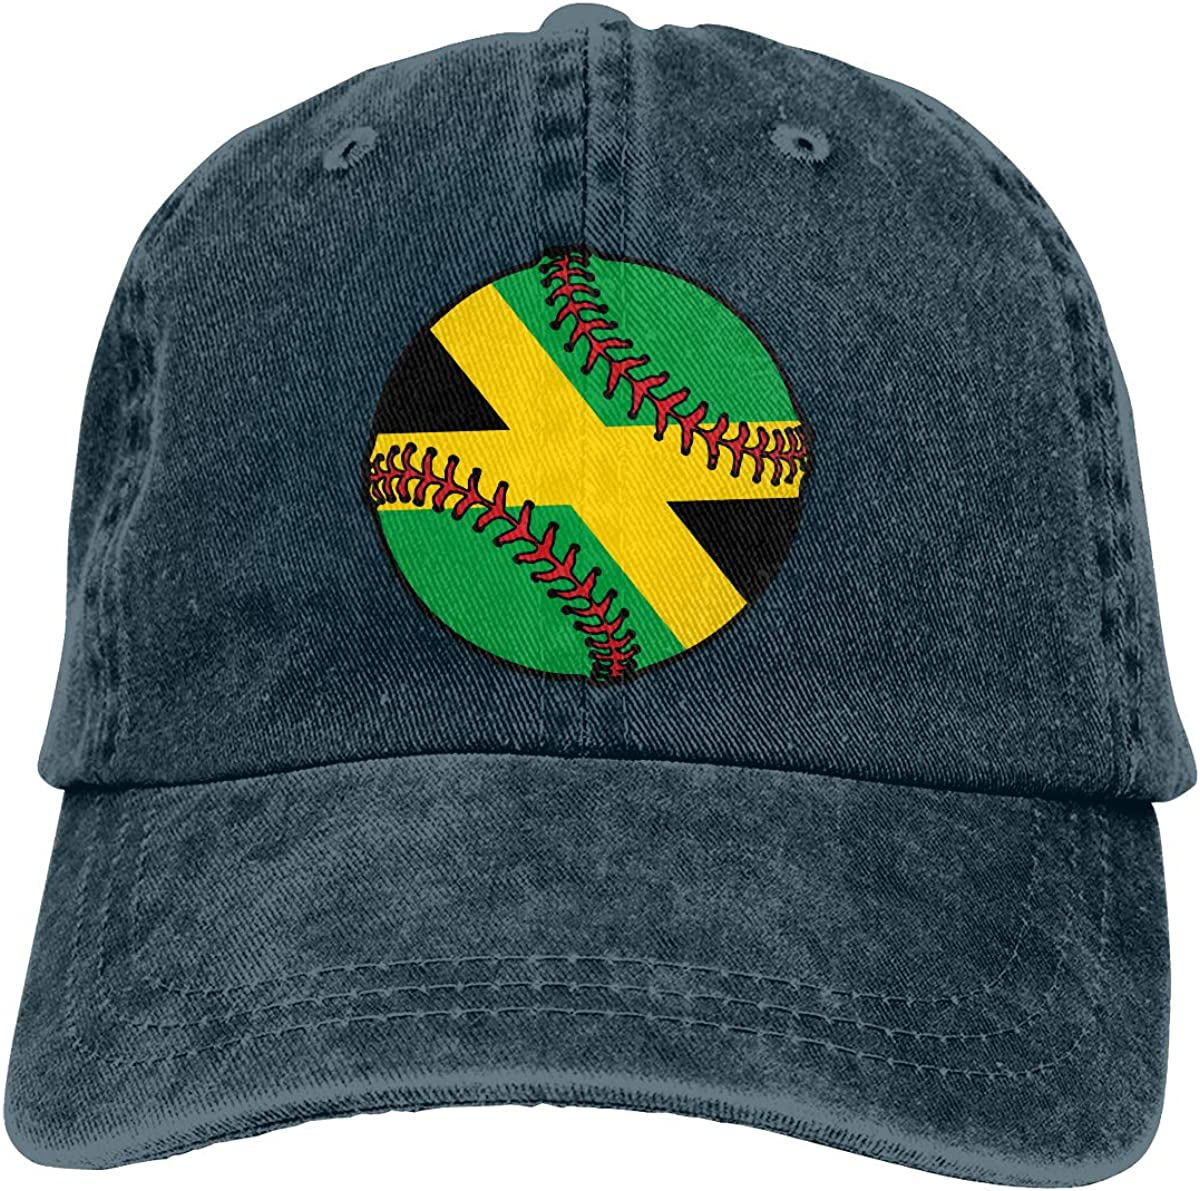 Jamaica Flag Baseball Unisex Custom Cowboy Hip Hop Cap Adjustable Baseball Cap